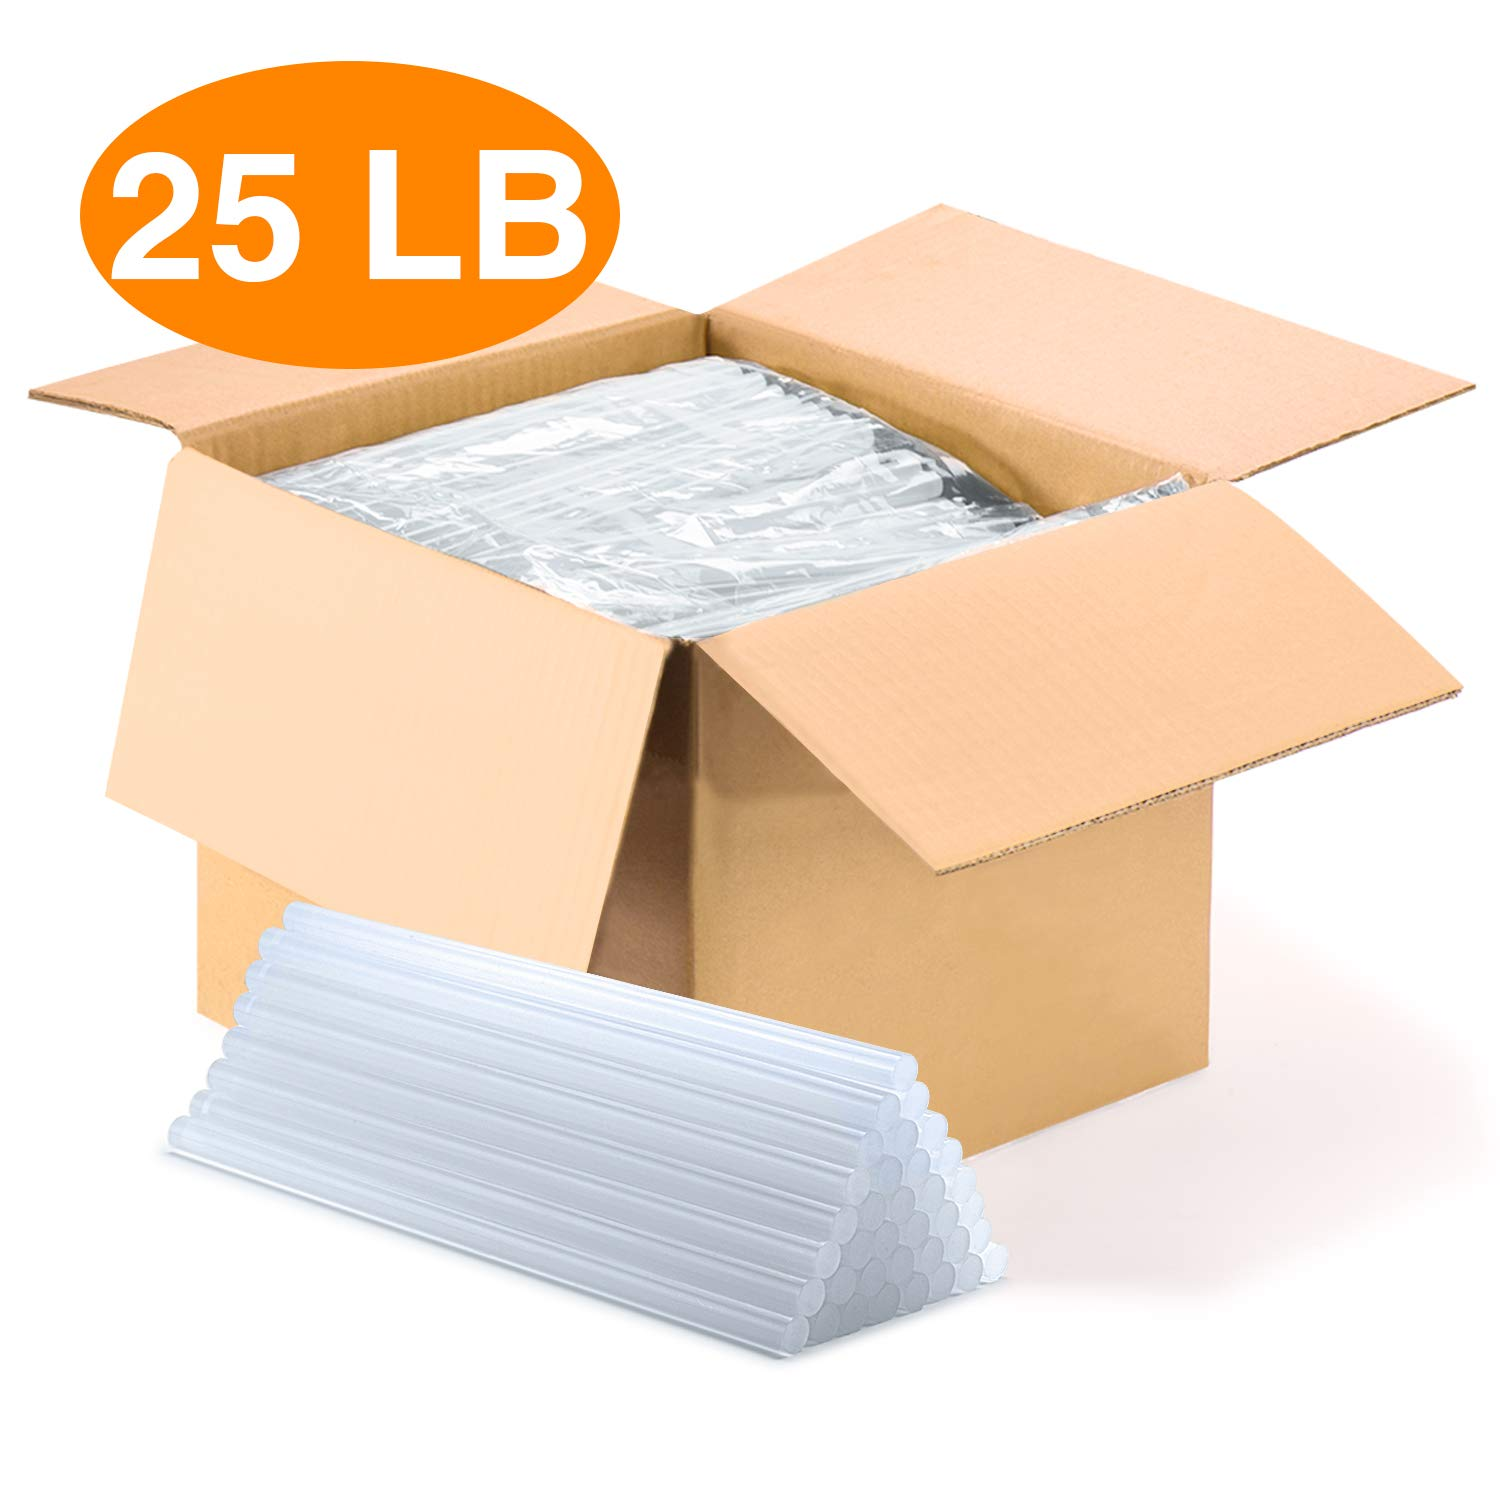 25LB Hot Glue Sticks Clear Full Size 10'' Length x 0.28'' Diameter Compatible with Full Size Industrial Glue Guns No Ordor,Good Adhesion,Few Bubble,Quickly Melting Meeting Your DIY Needs